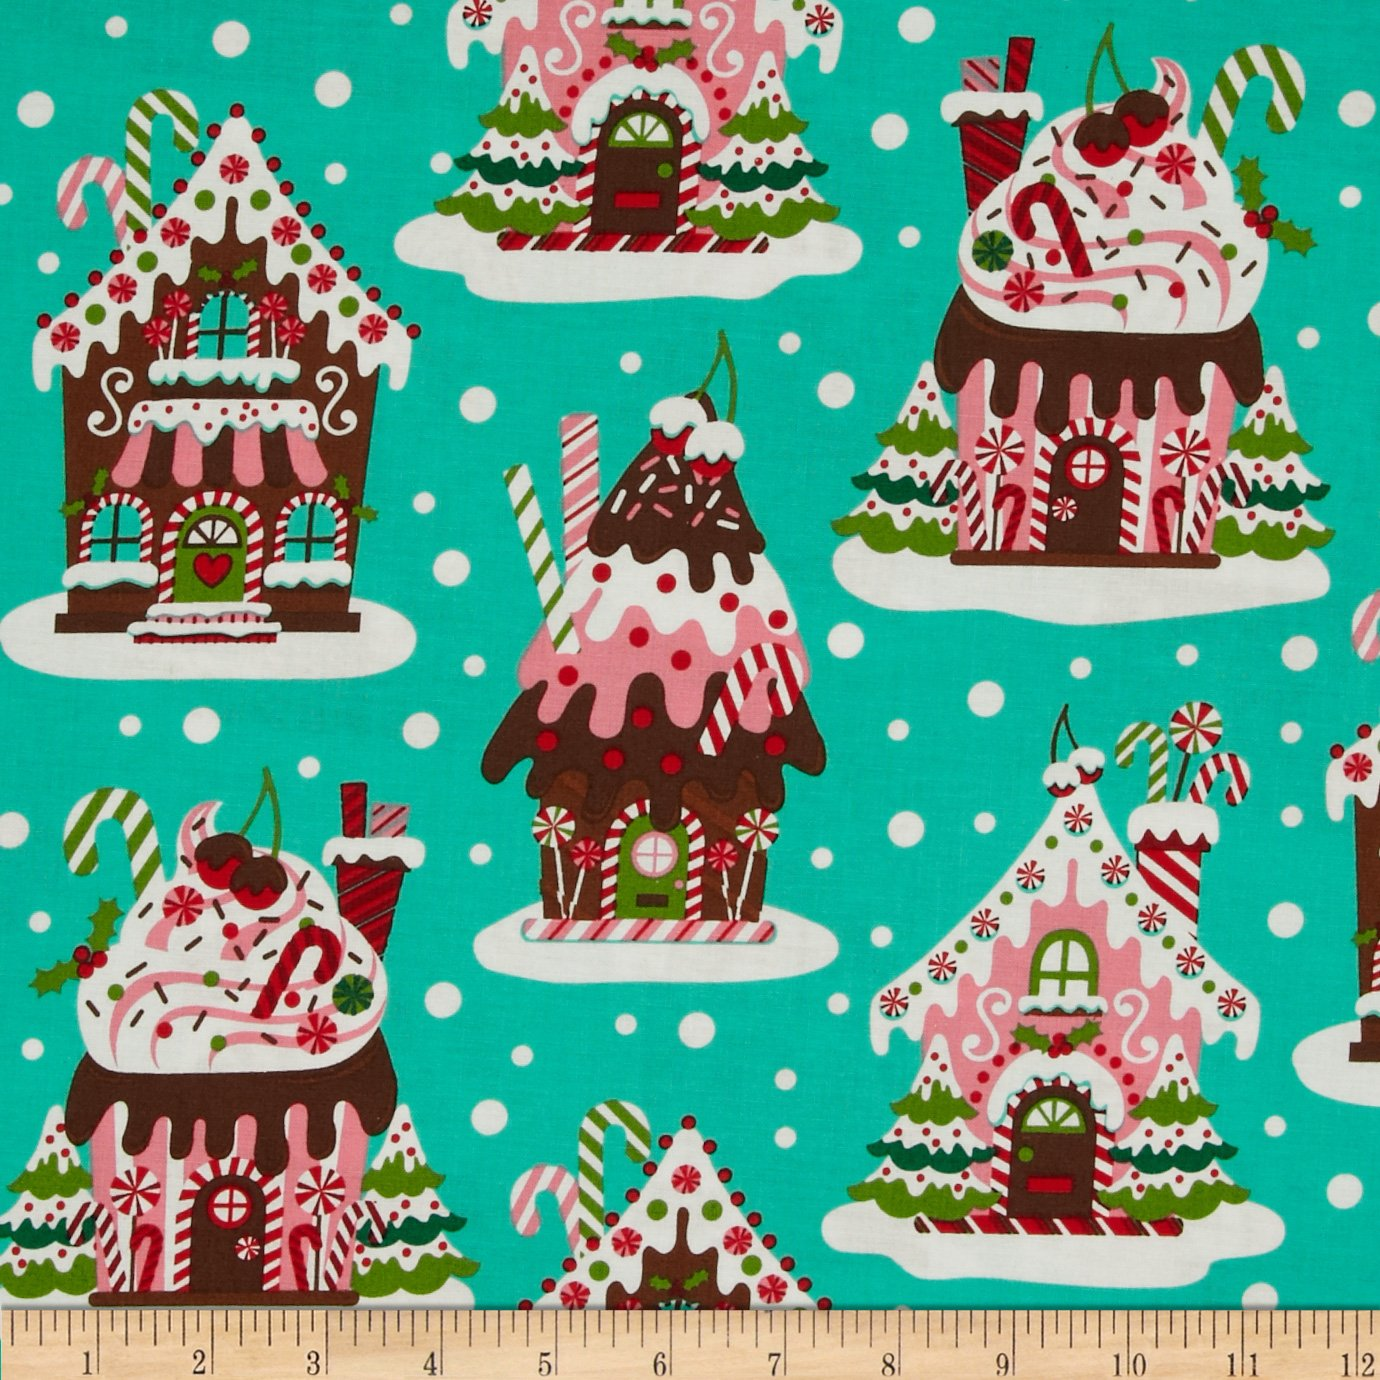 Michael Miller Holiday Gingerbread Houses Fabric by The Yard, Aqua 0290455